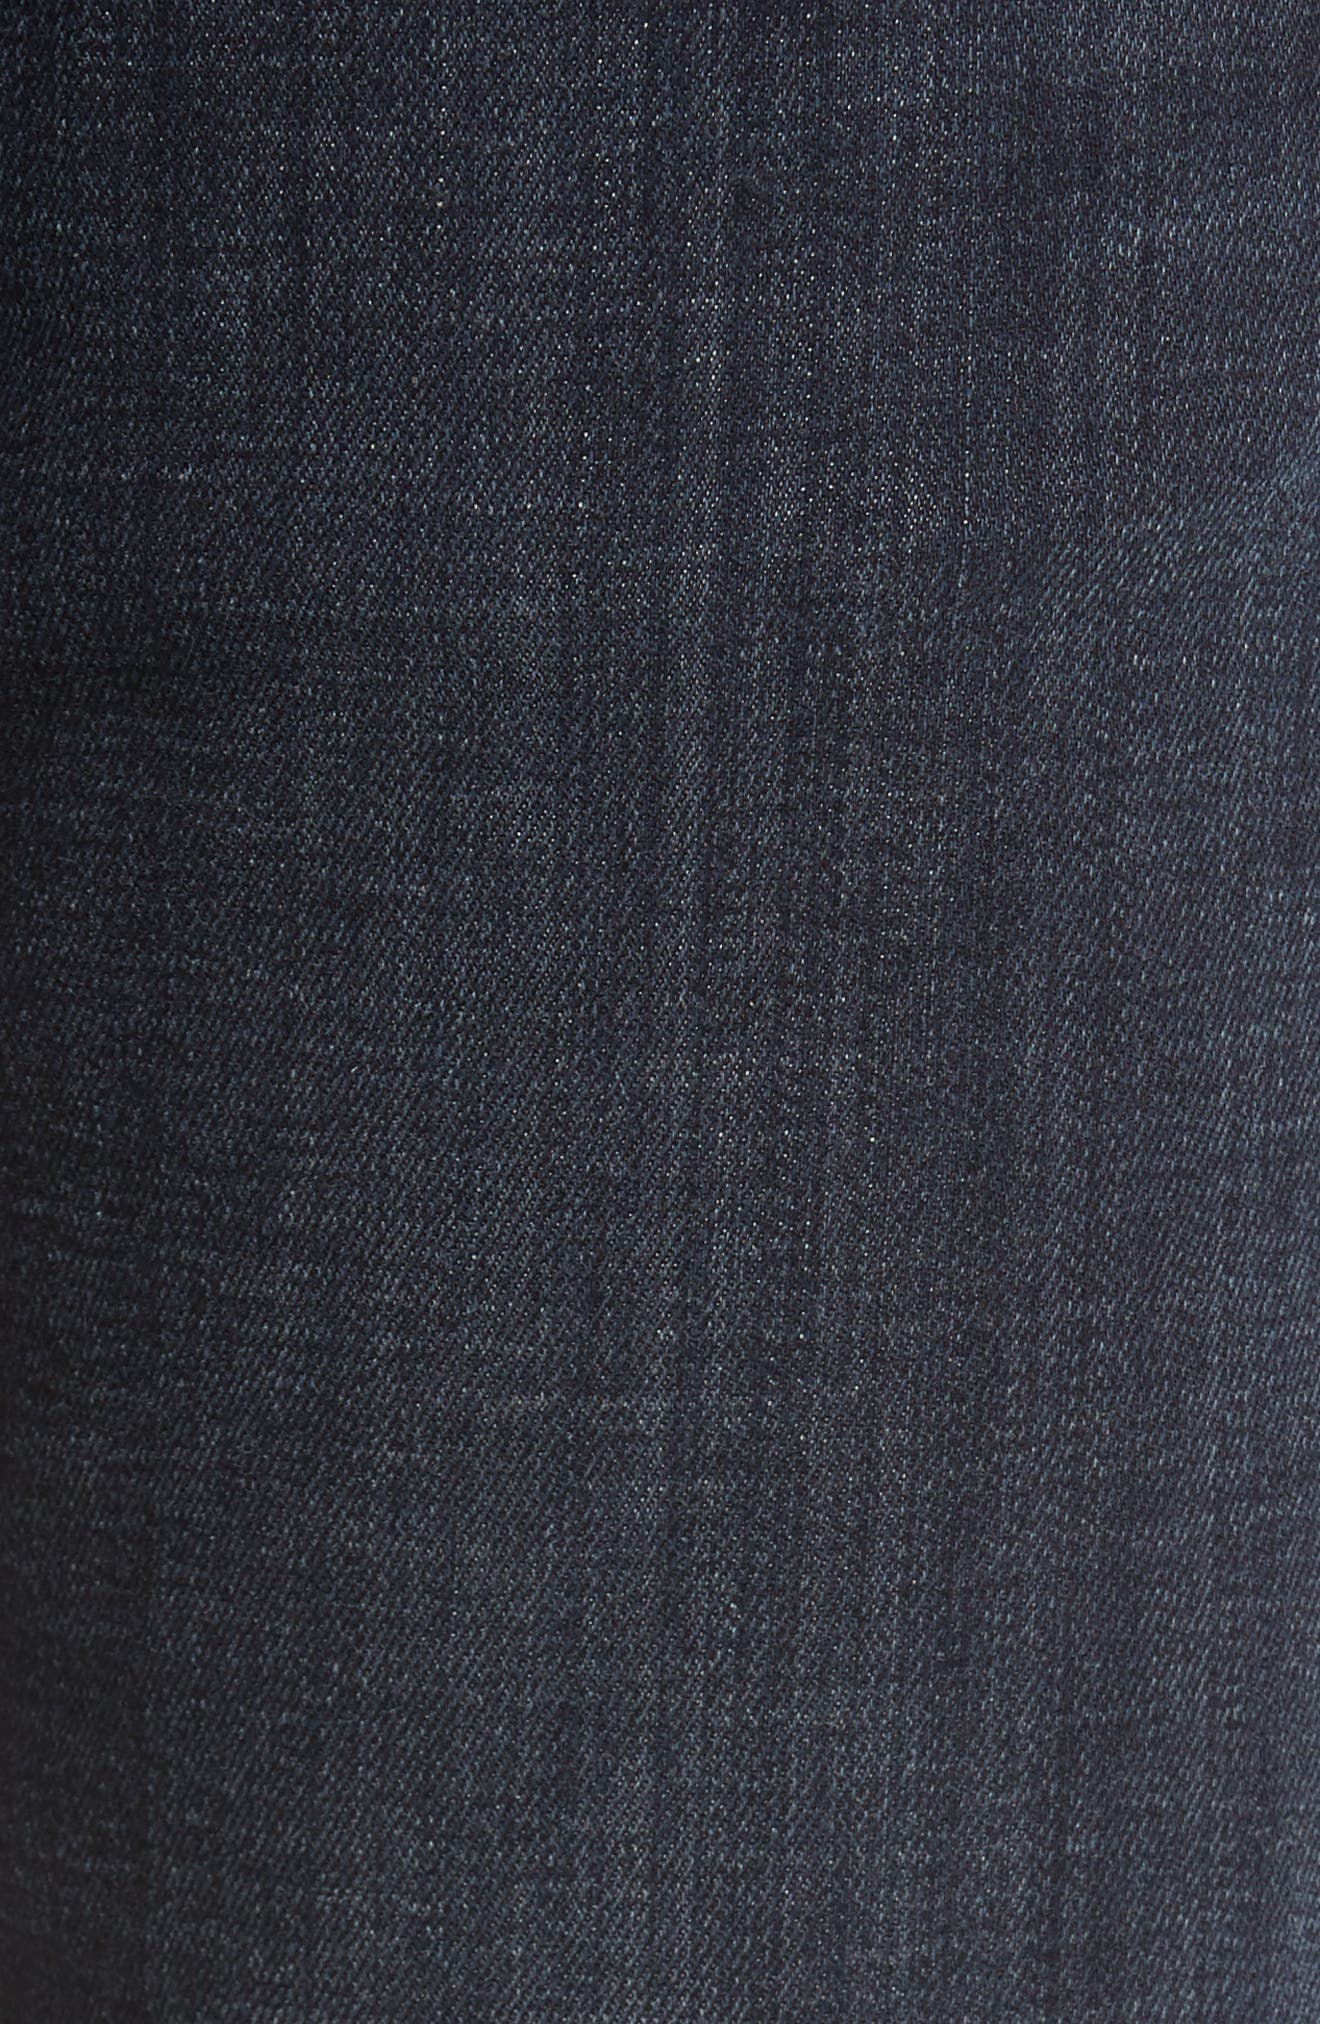 5011 Relaxed Fit Jeans,                             Alternate thumbnail 6, color,                             Harvard